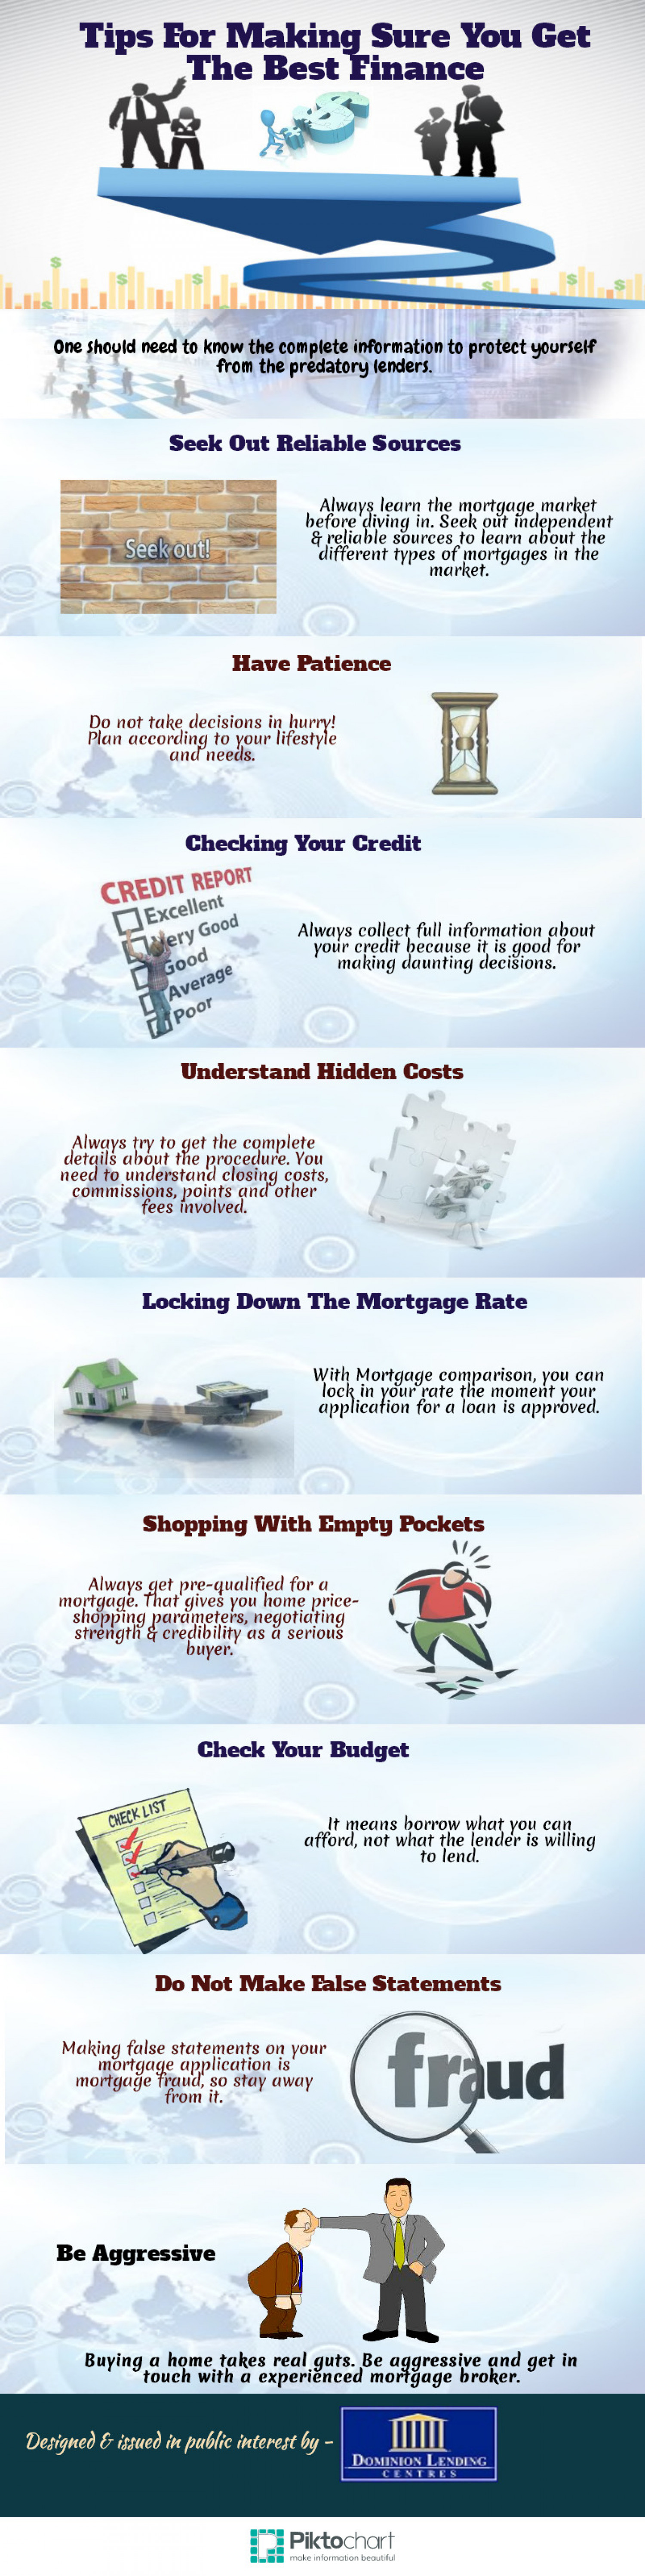 Tips for Making Sure You Get the Best Finance Infographic